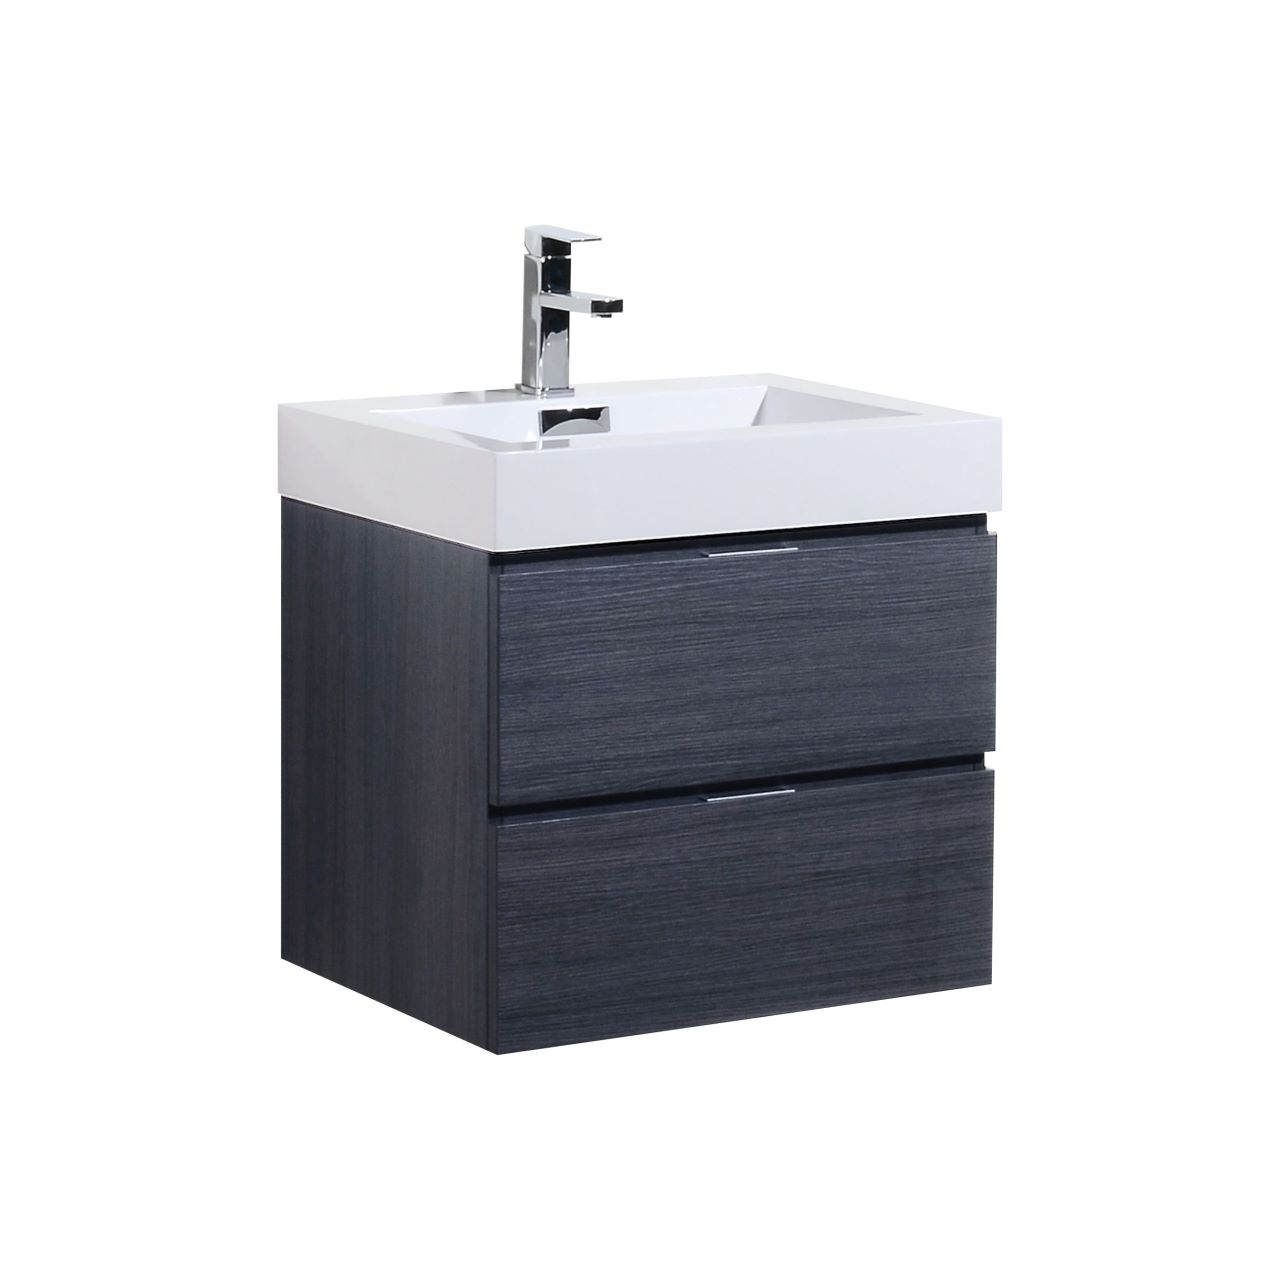 "Kubebath - 24"" Floating Vanity Set - Grey Oak Finish"